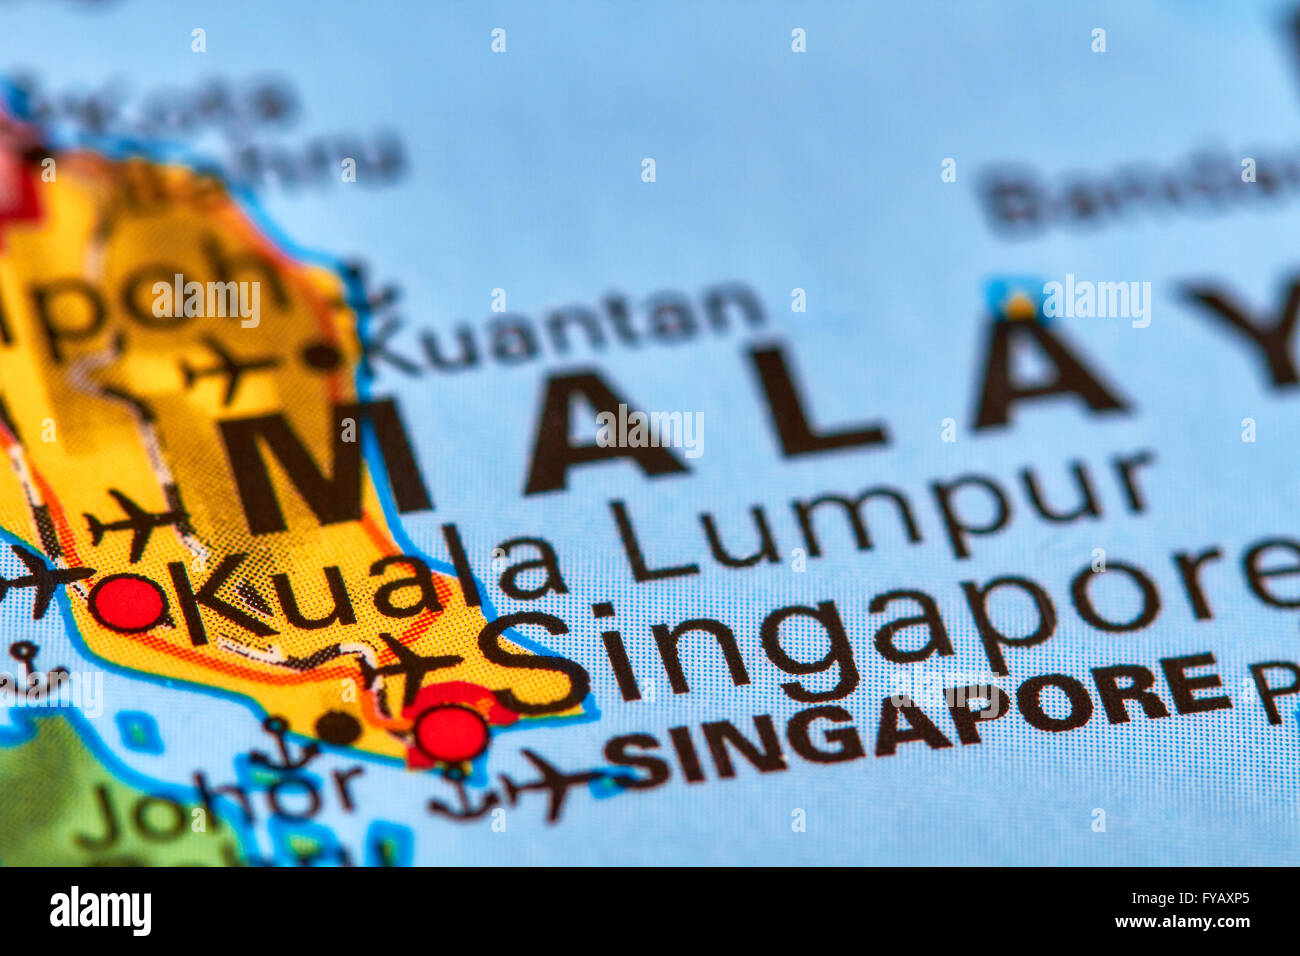 Kuala lumpur capital city of malaysia on the world map stock photo kuala lumpur capital city of malaysia on the world map gumiabroncs Image collections